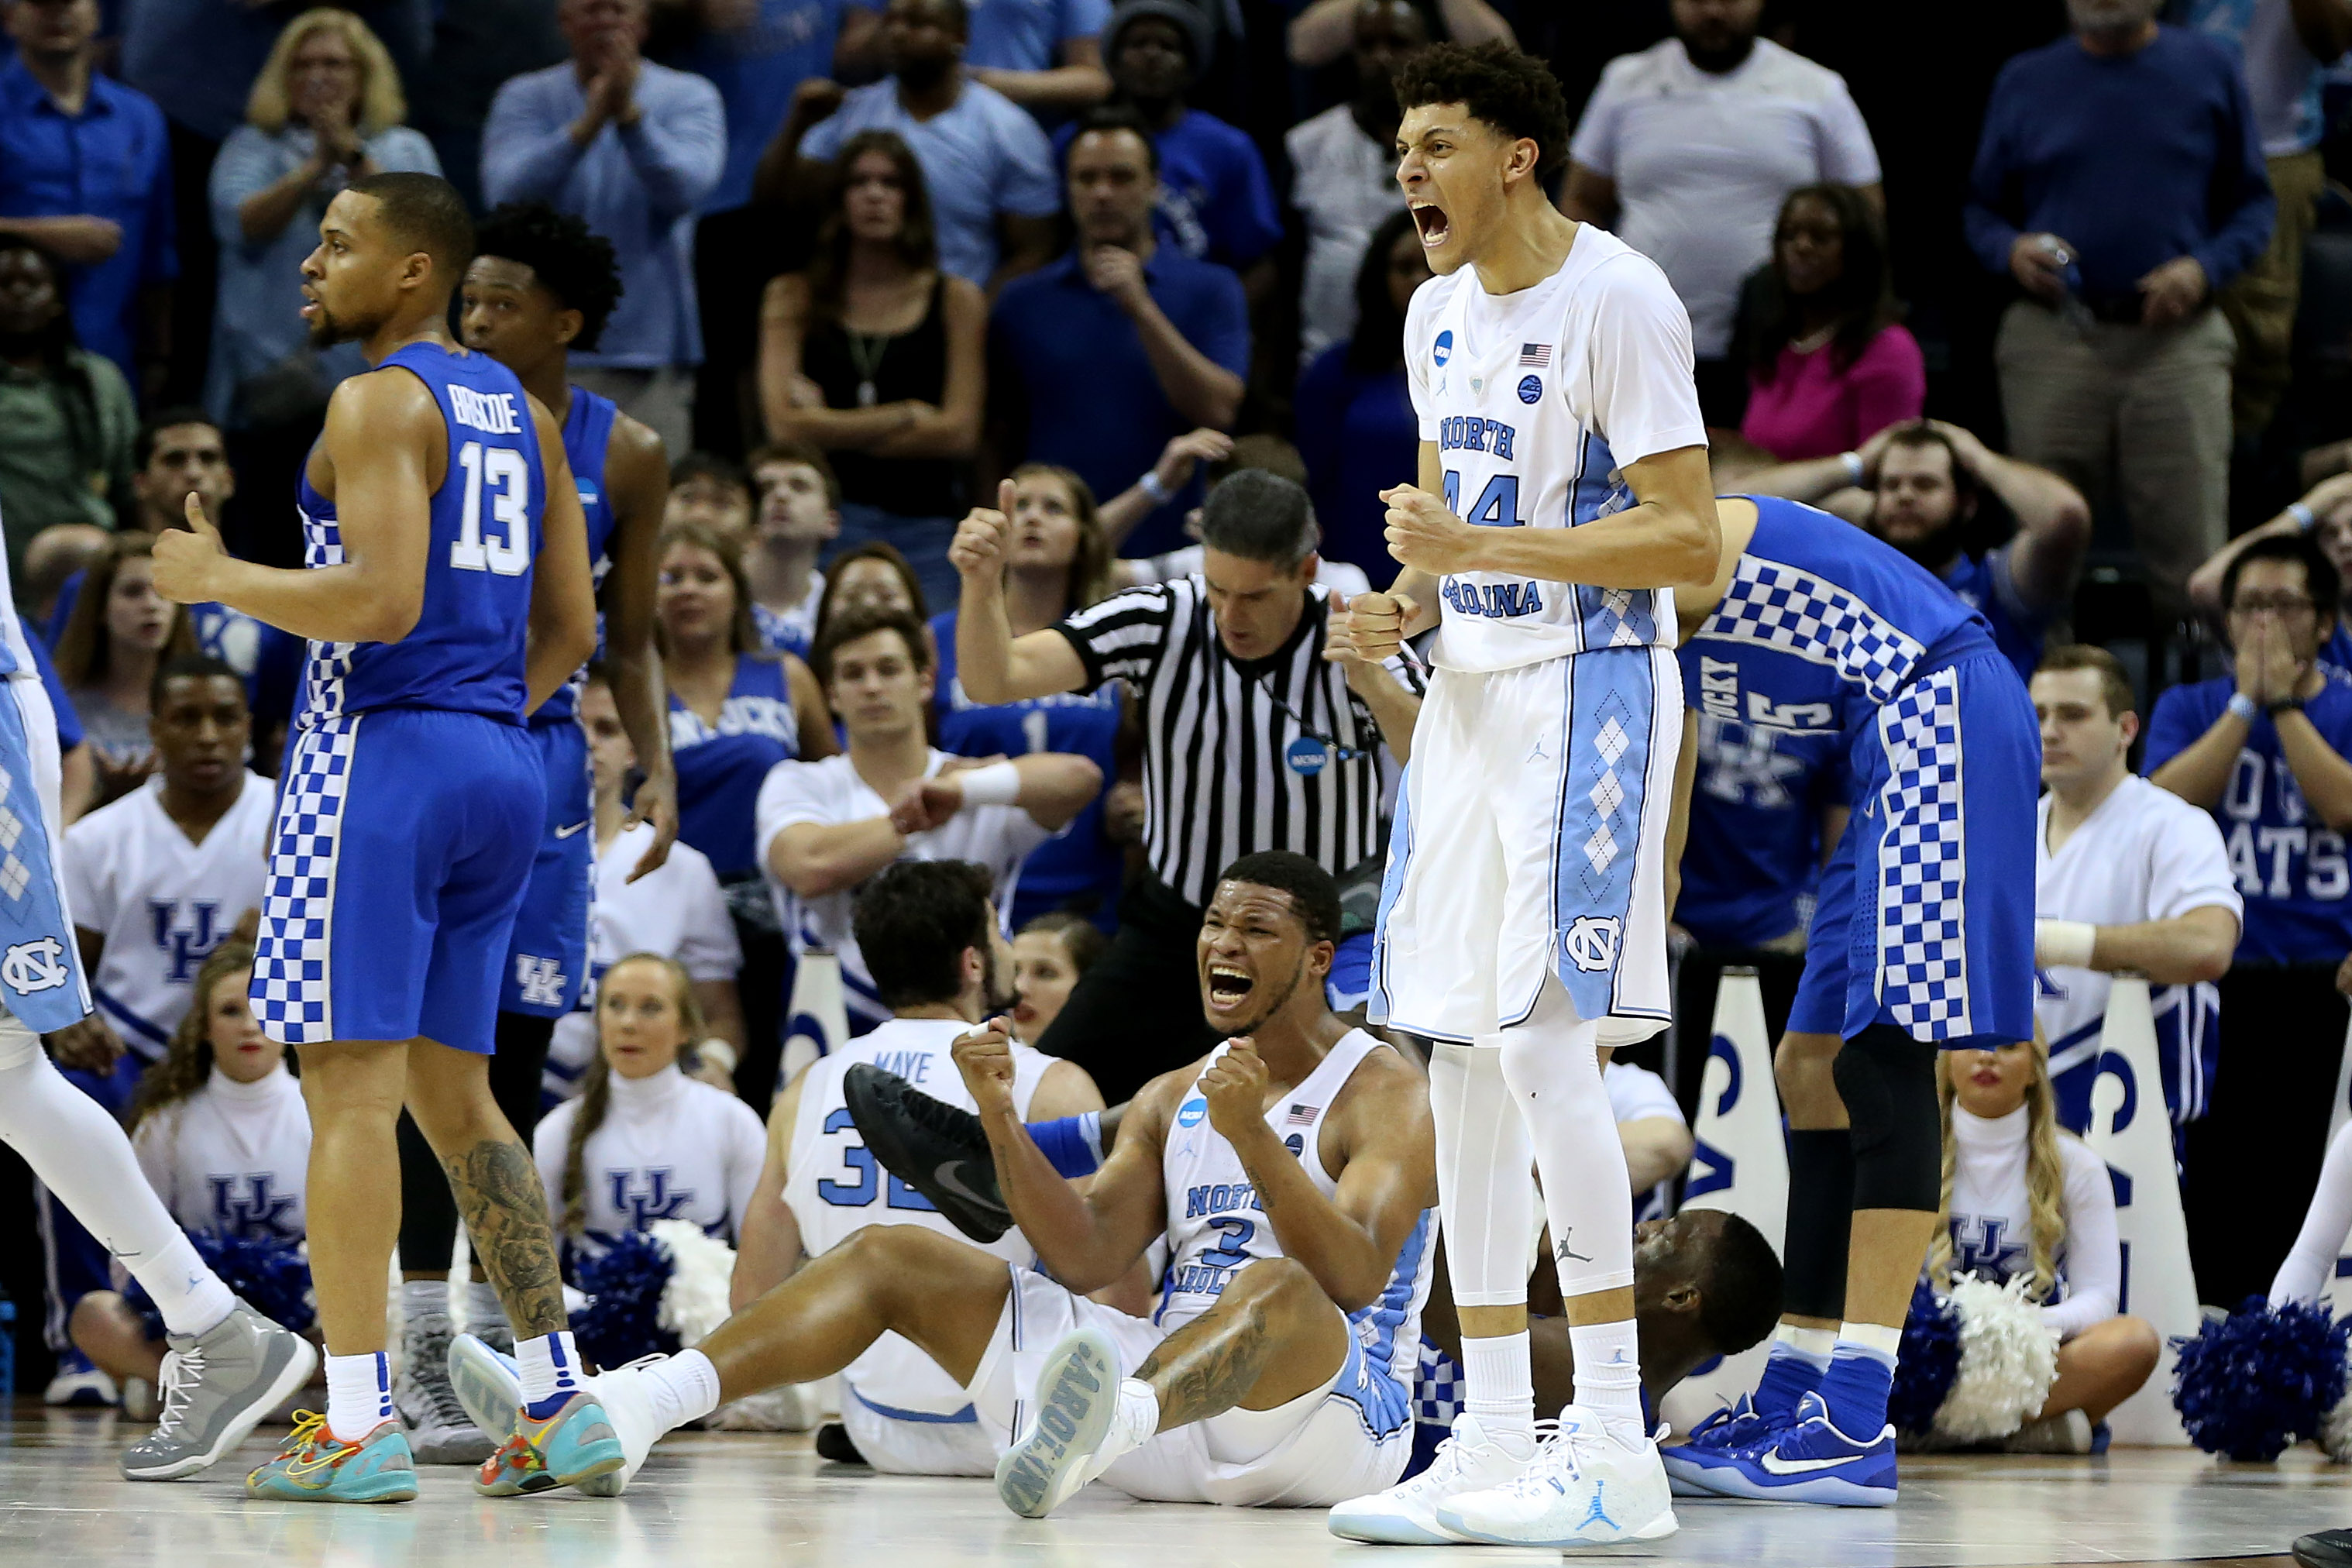 2017 NCAA Tournament preview, best bets